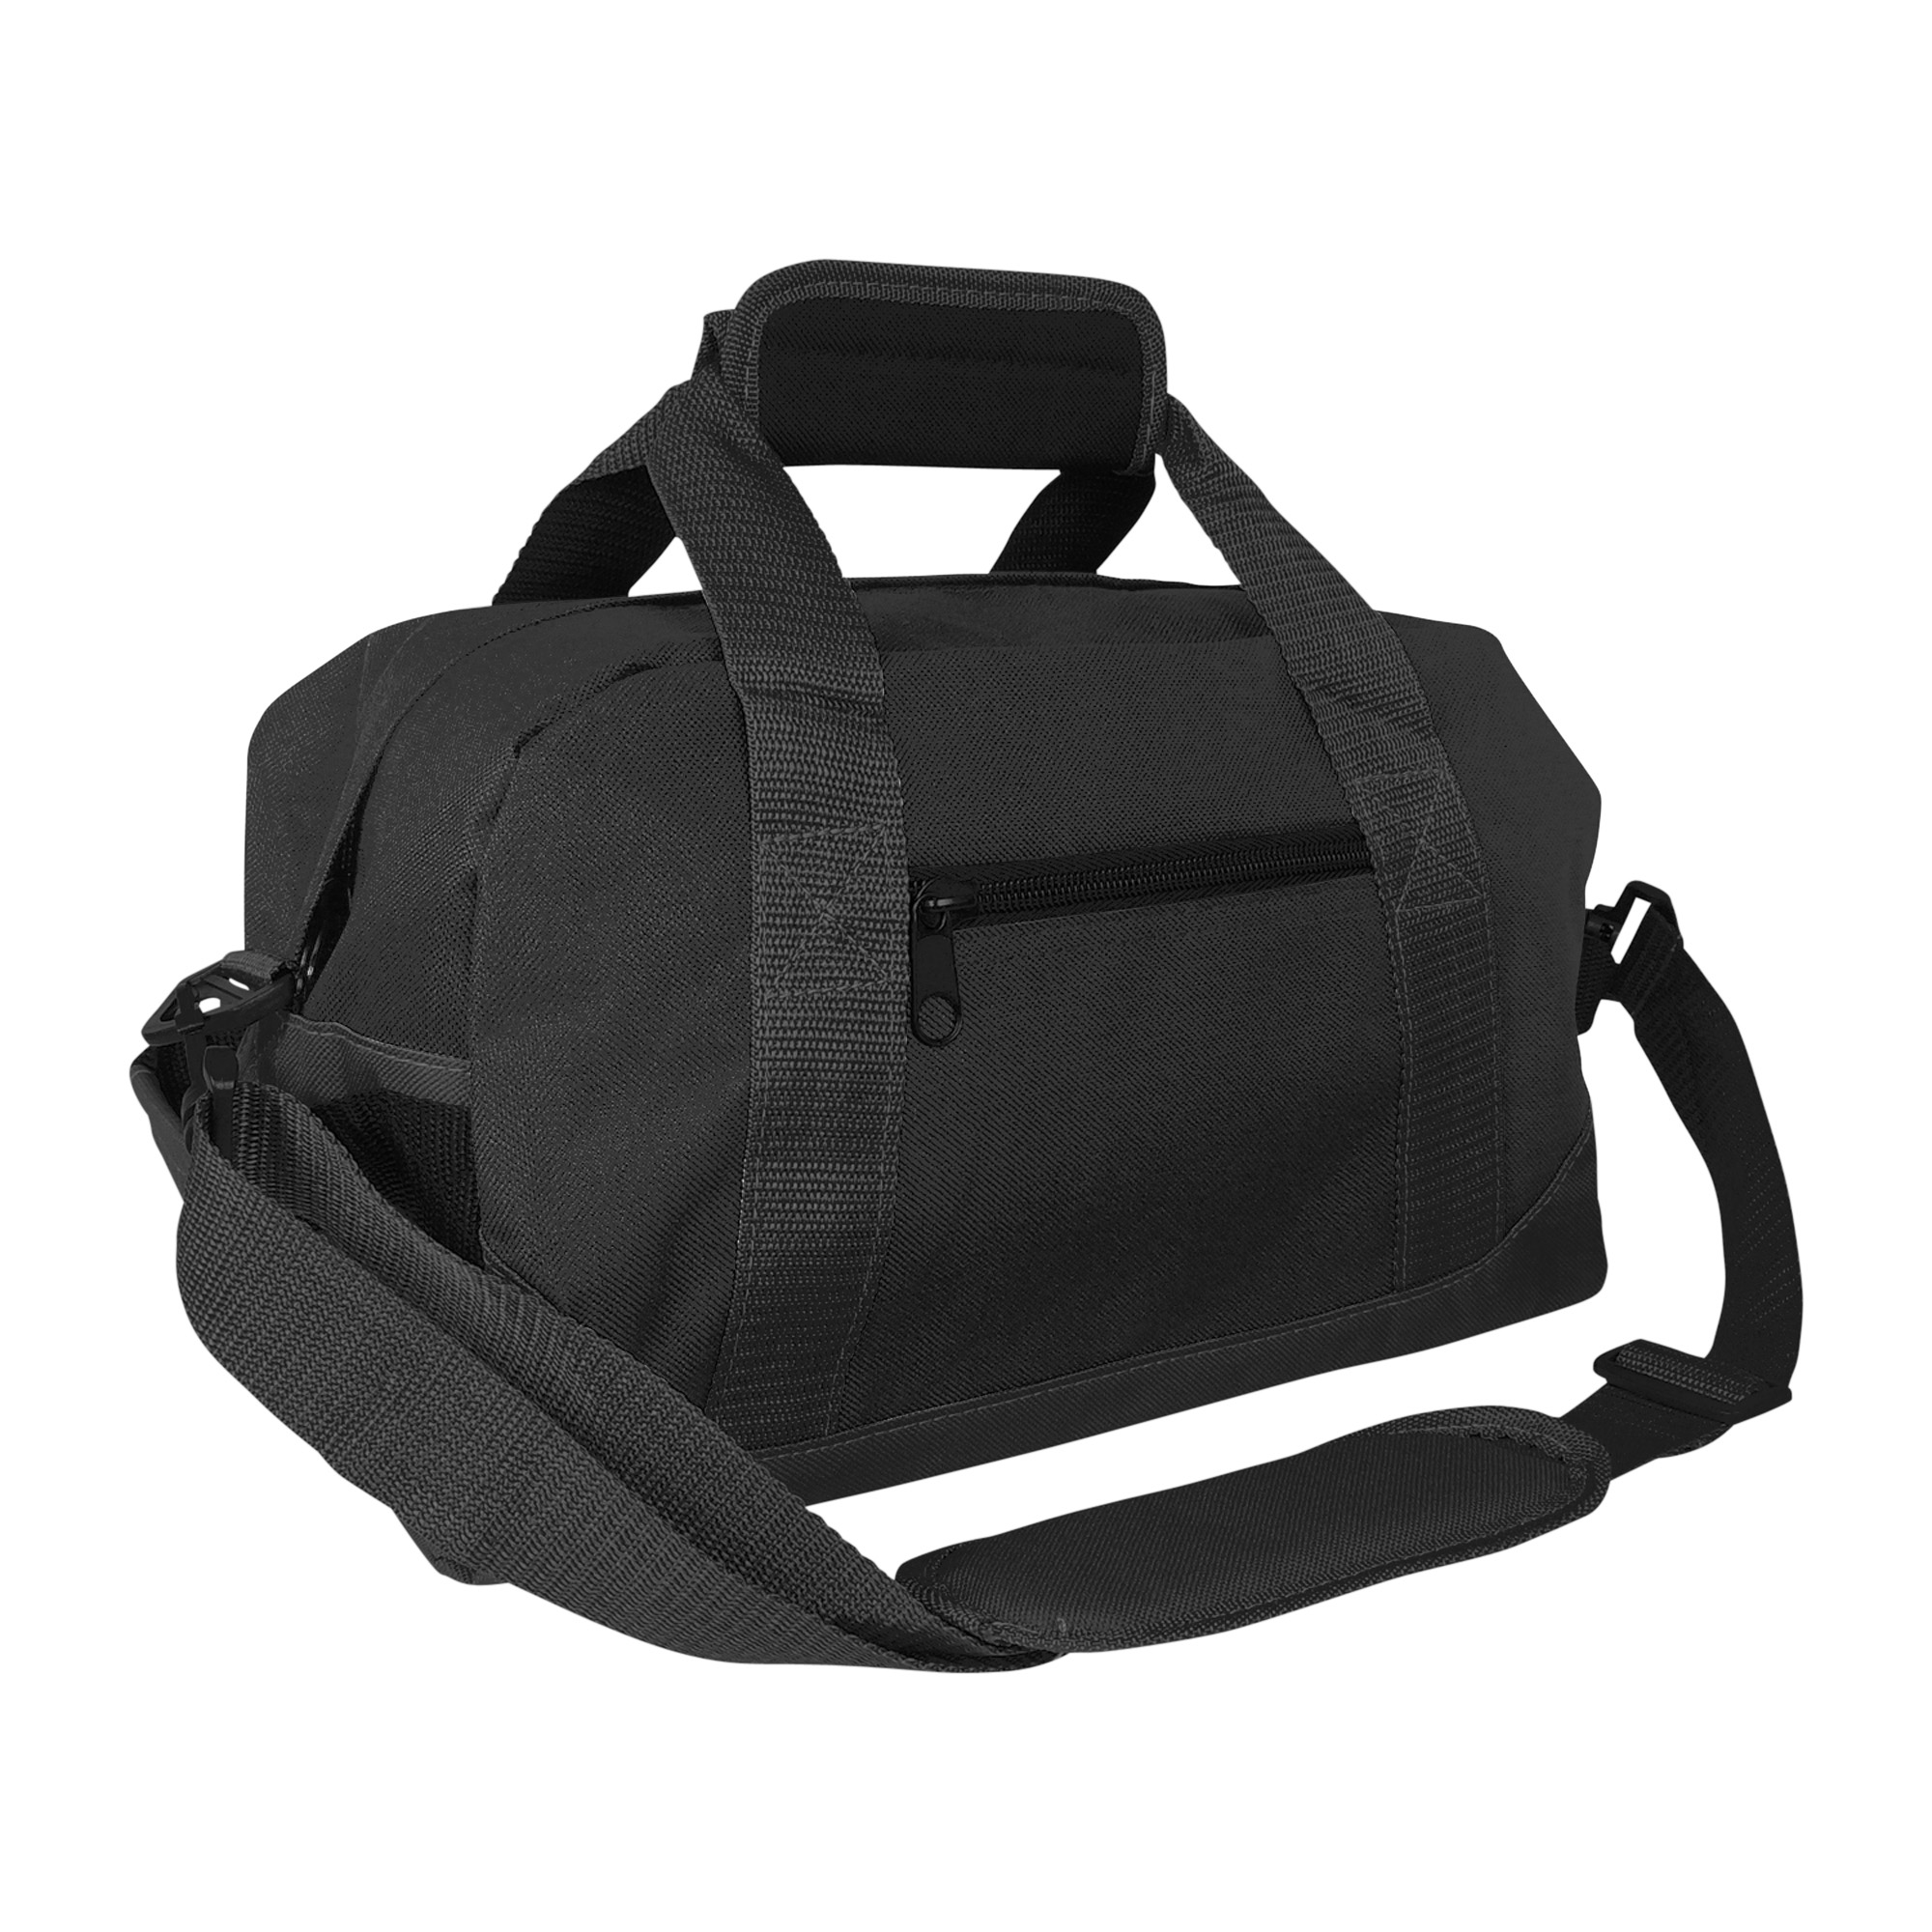 "DALIX 14"" Small Duffel Bag Gym Duffle in Black with Shoulder Strap"